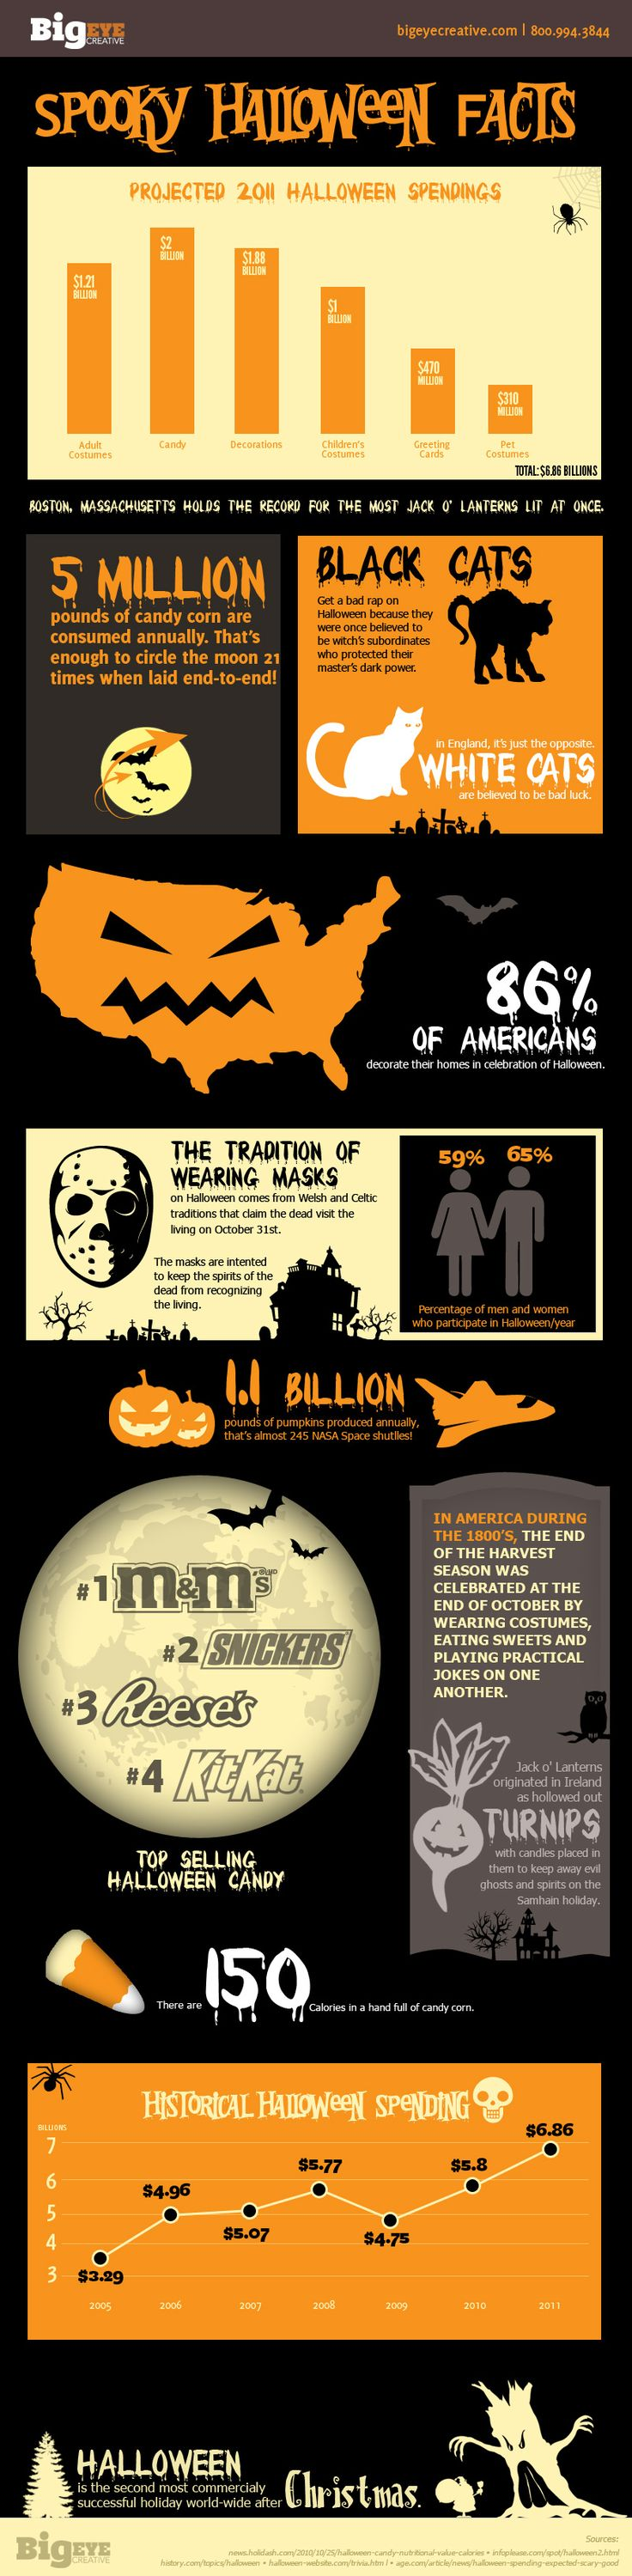 Halloween infographic - spooky facts and fun!